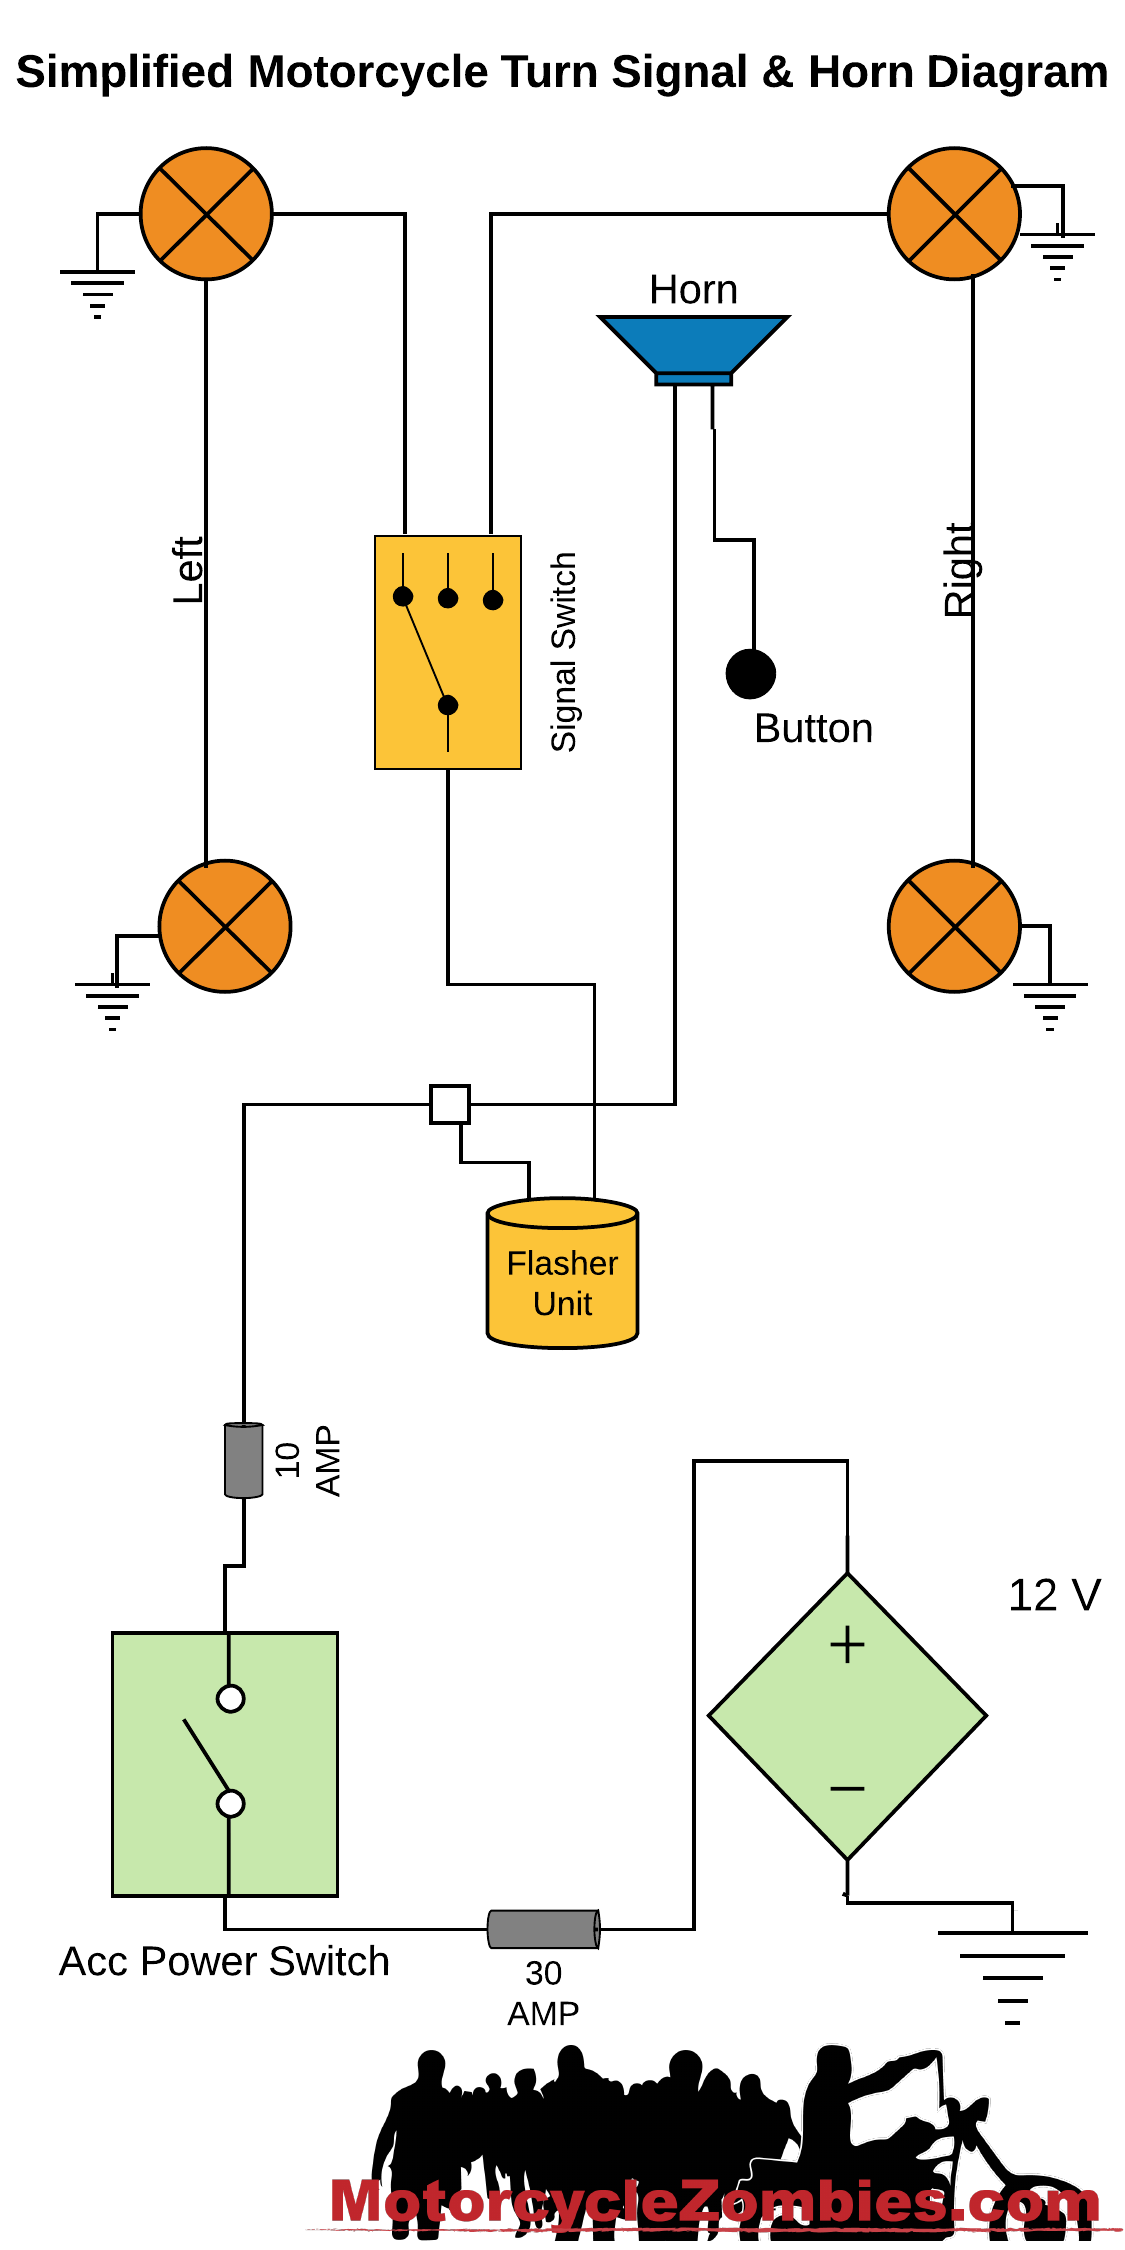 Simple 12 Volt Wiring Diagram from www.motorcyclezombies.com